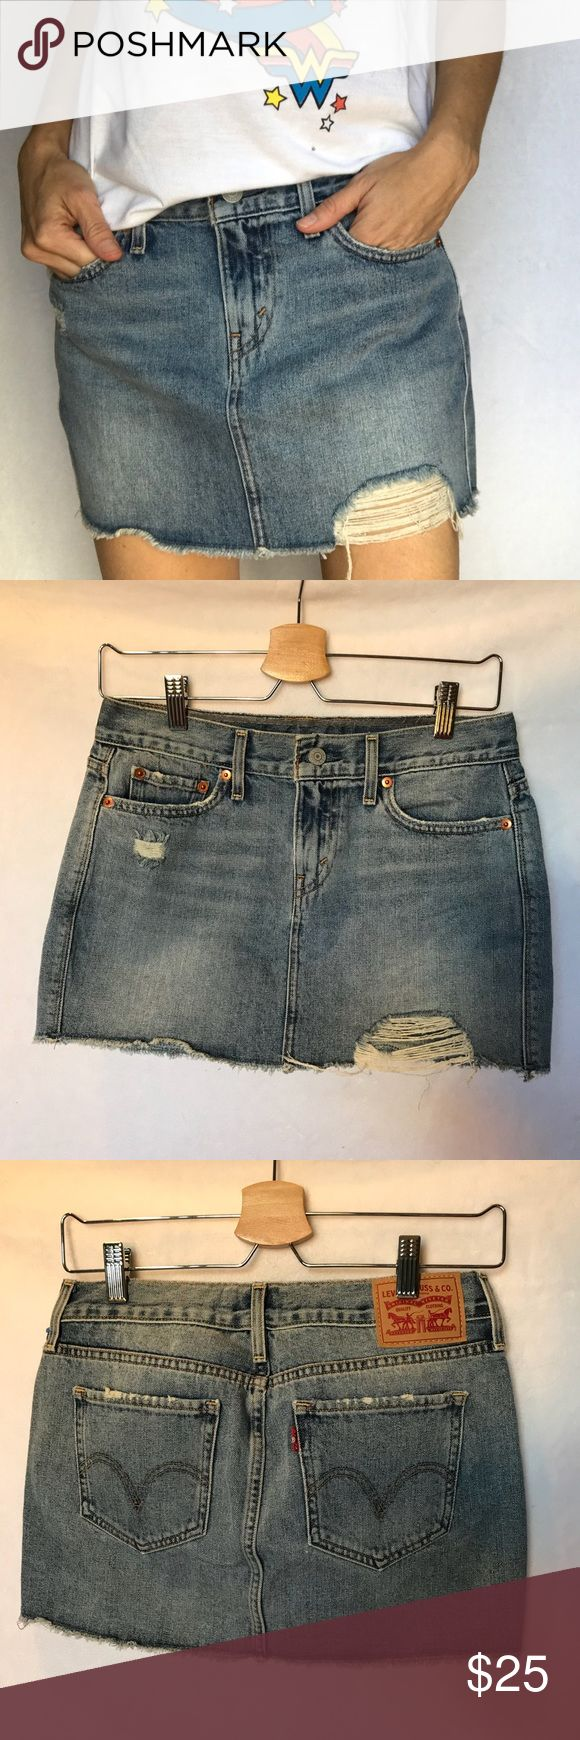 Levi's Jeans Skirt Women's size 25 Distressed Perfect condition Levi Skirt.  Size 25 Measurements in the pictures was taken flat.  No stains. Levi's Skirts Mini